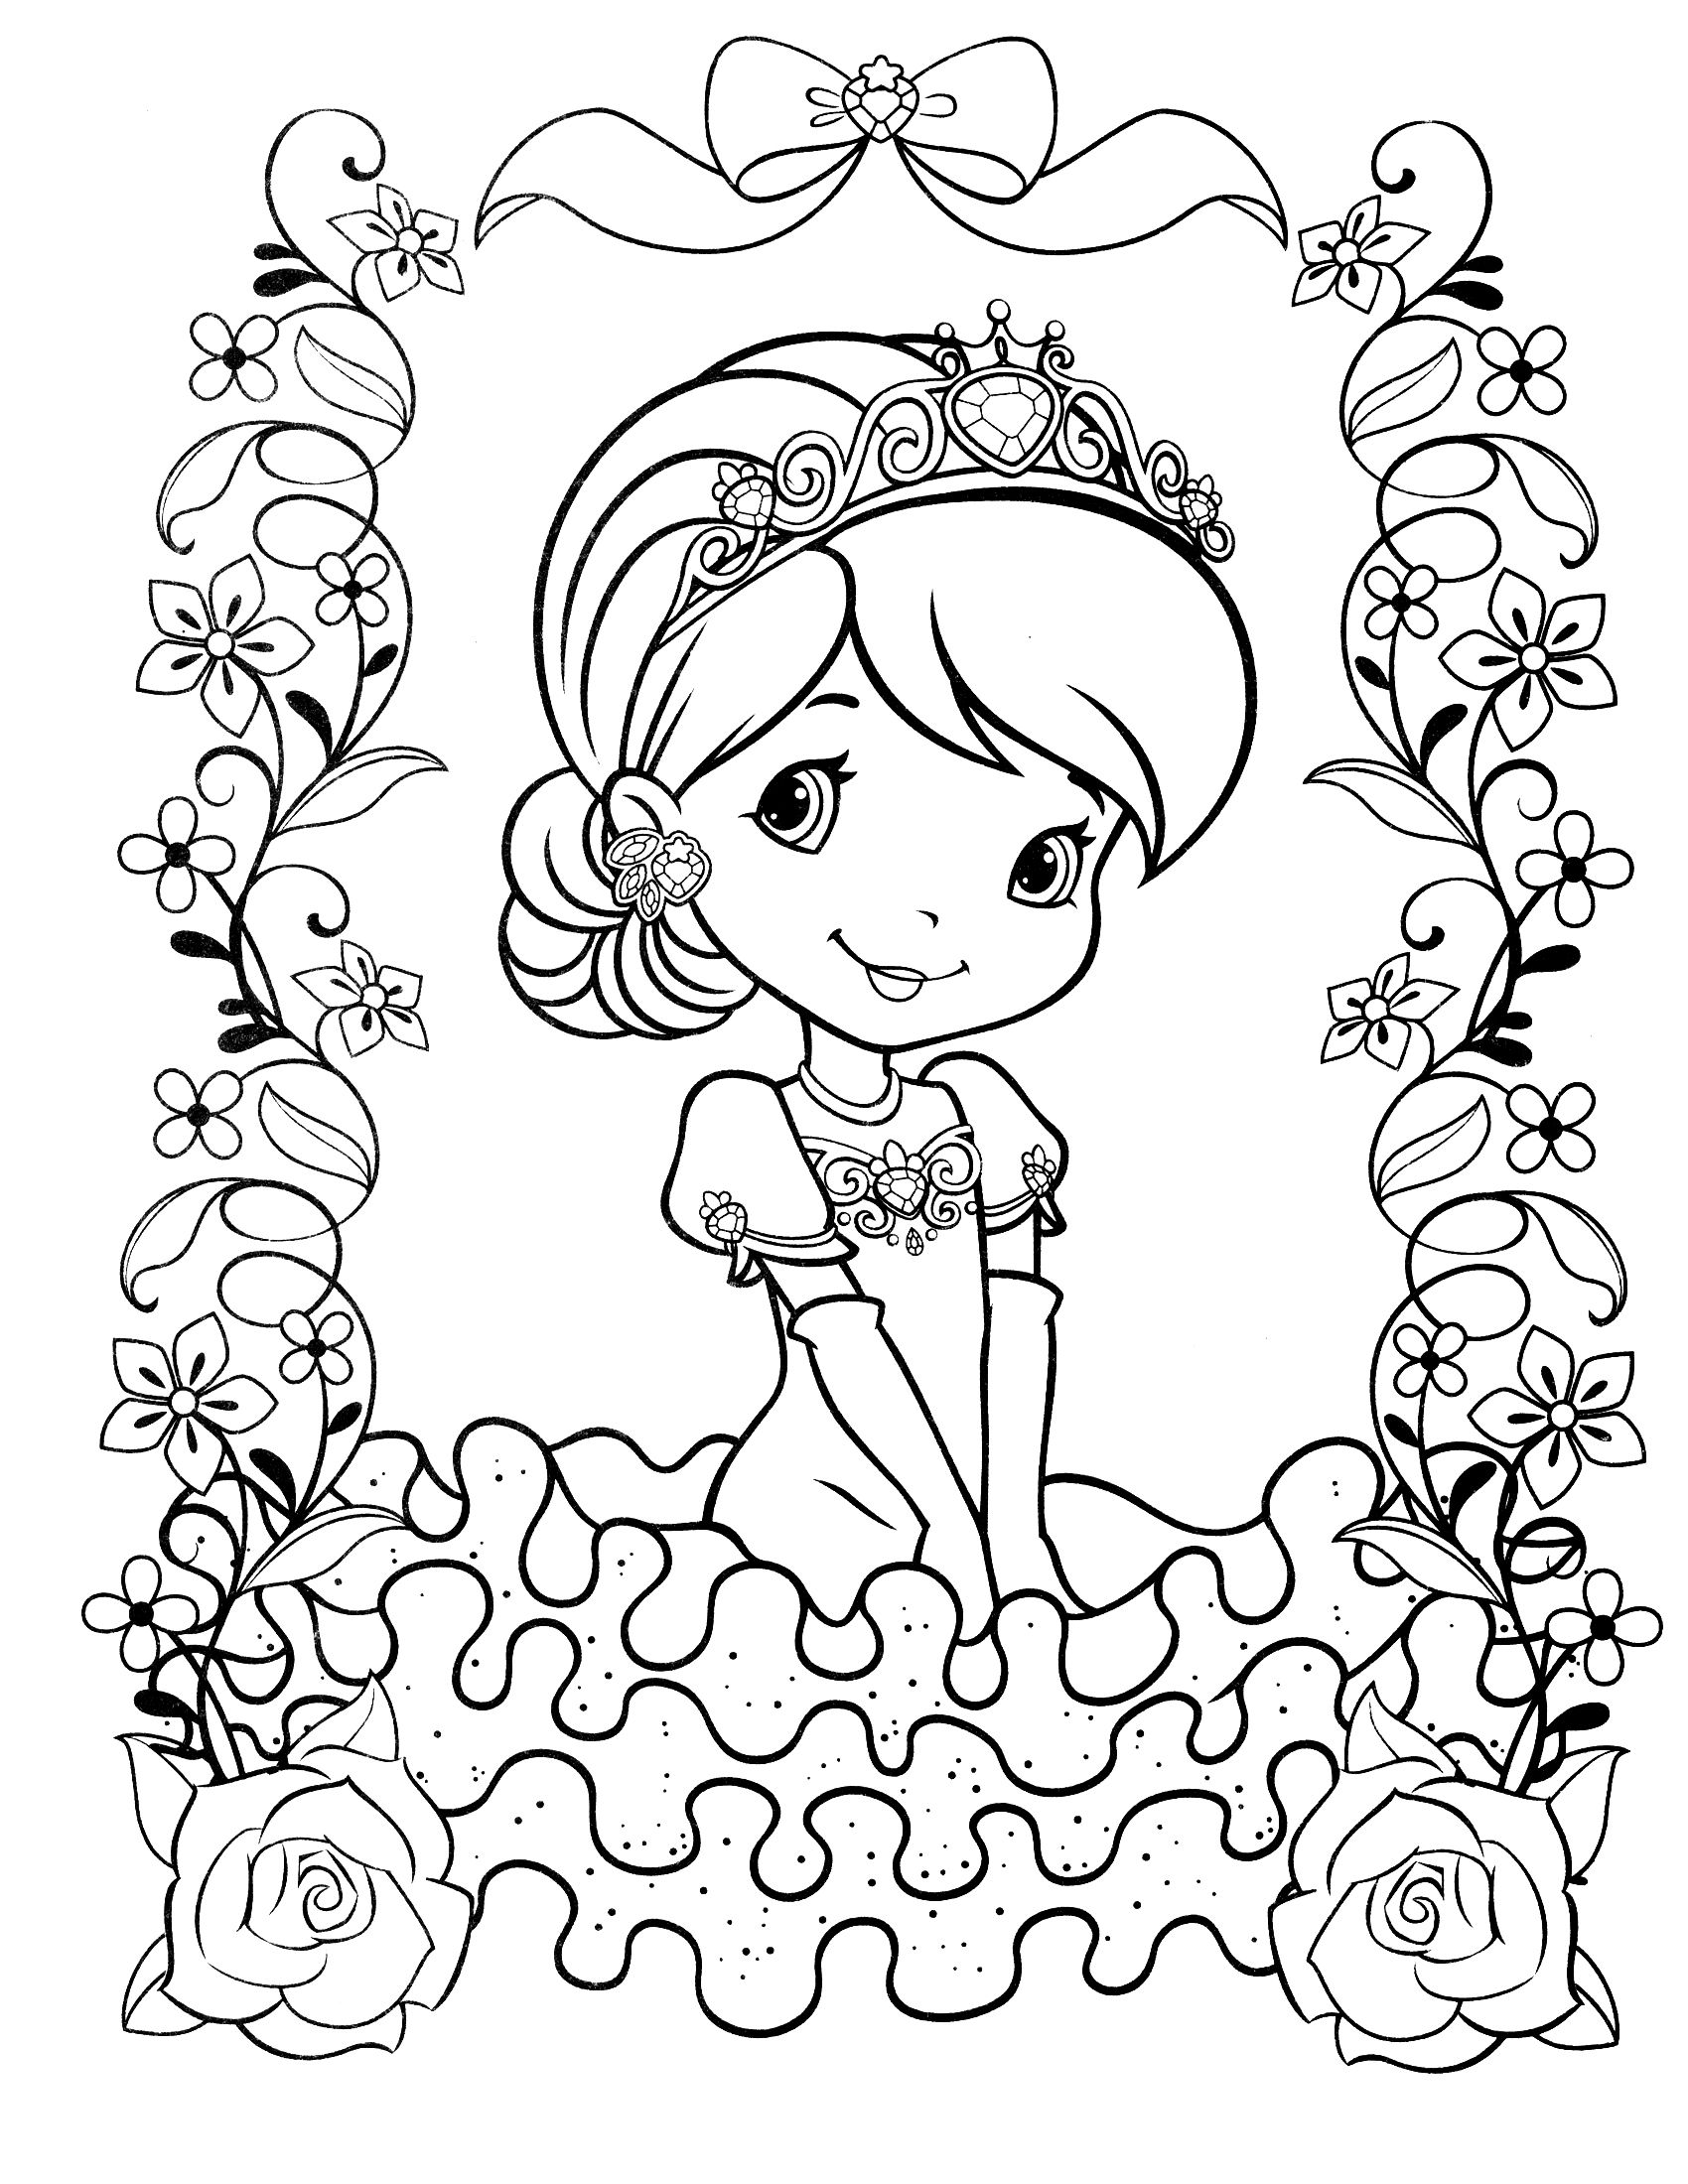 strawberry shortcake coloring pages free - photo#28